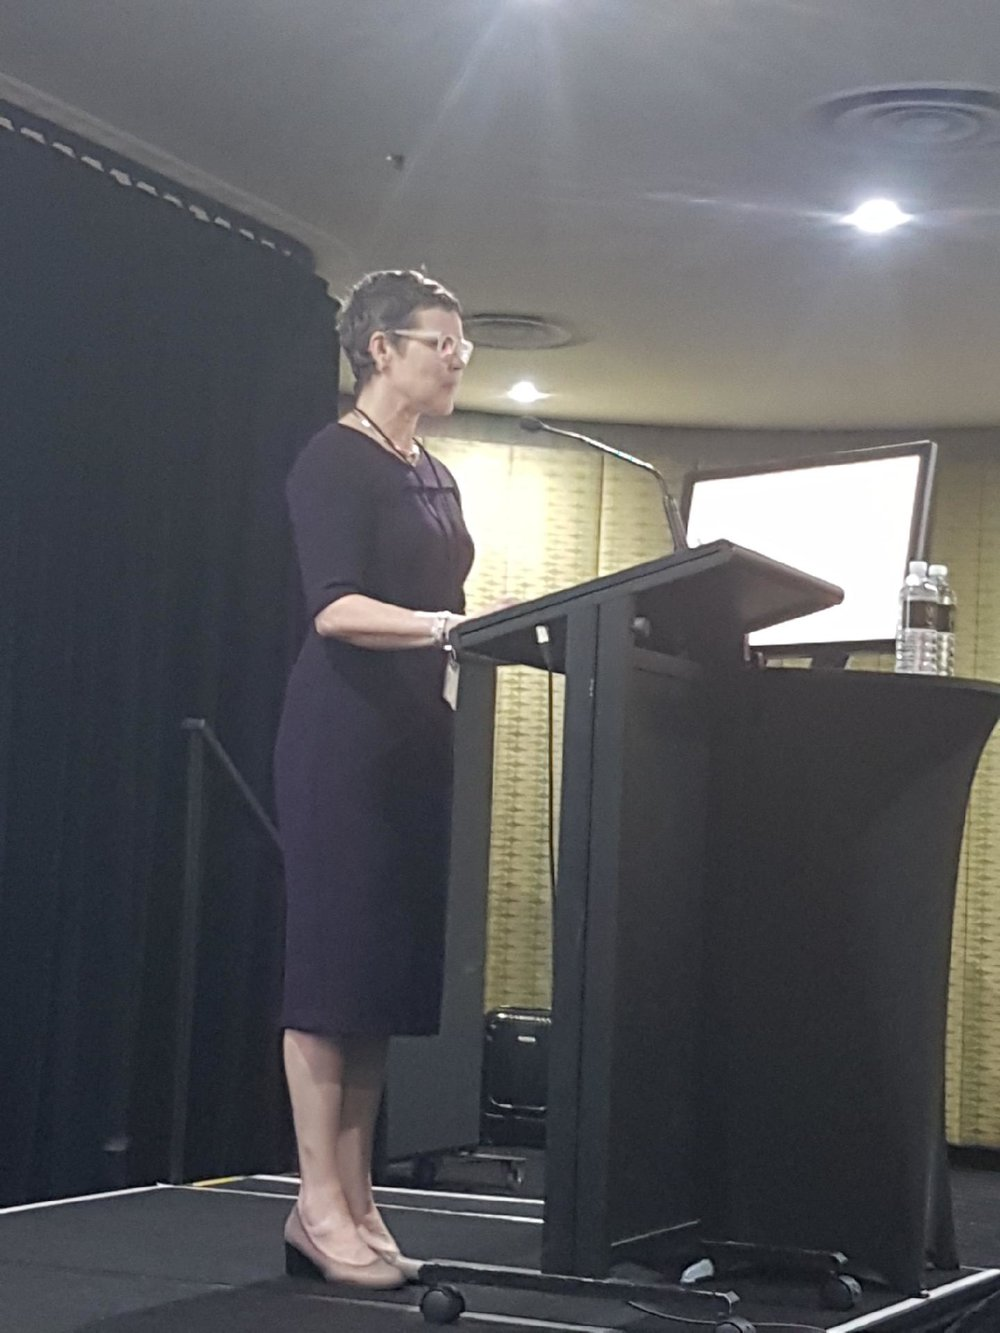 Dr Jo Mitchell- Executive Director - Centre for Population Health. Dr Mitchell is a brilliant leader who is thoughtful and reflective. I first met her at the ANZSOG Executive Program. Top talent!